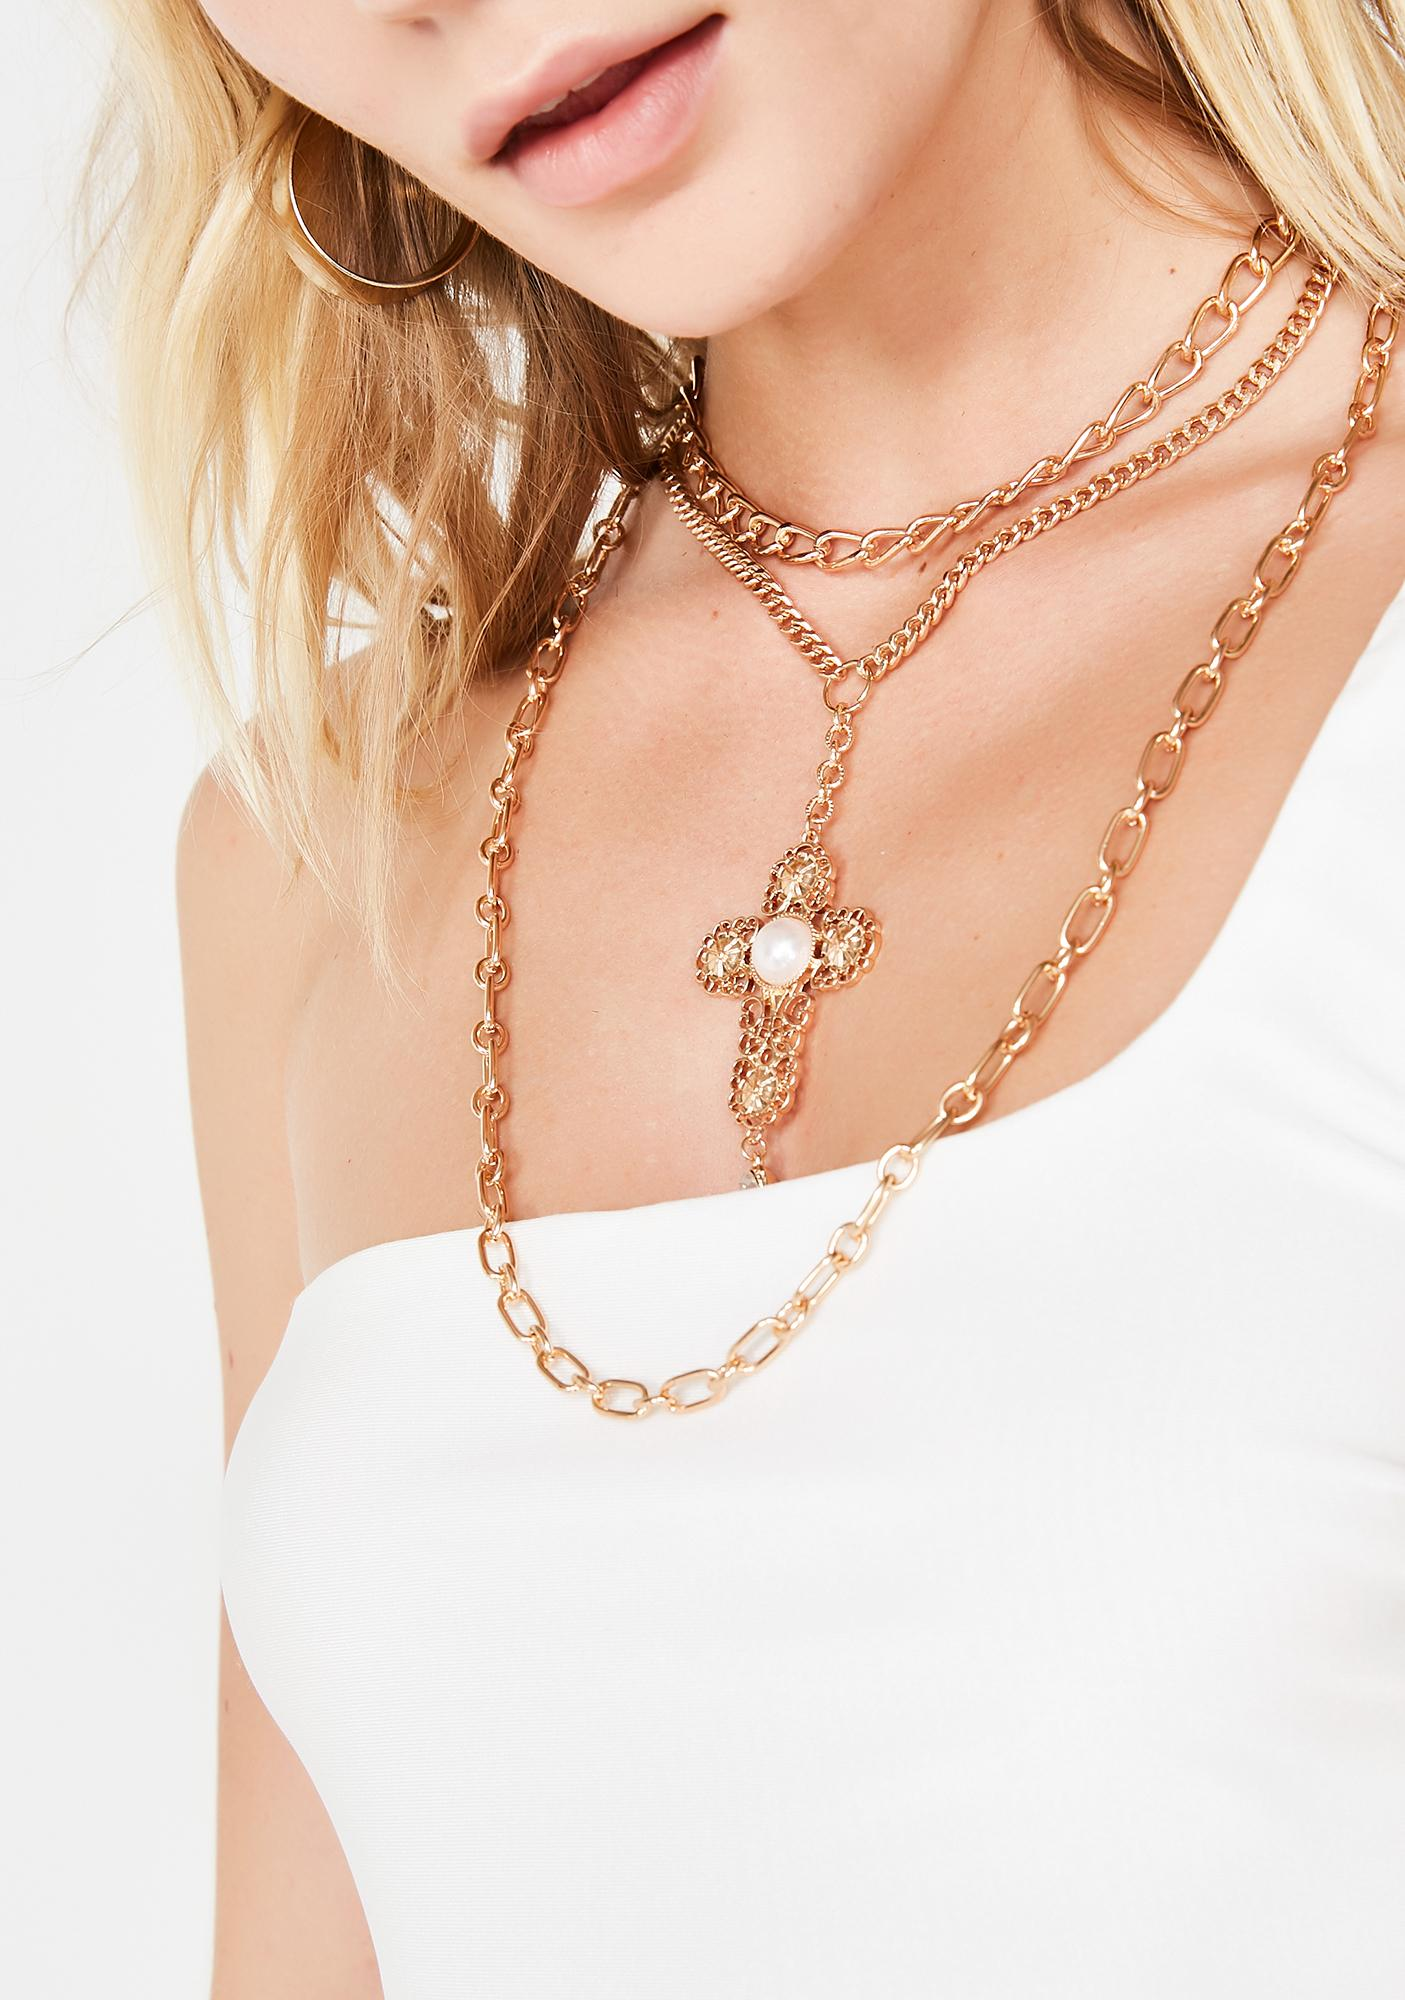 In Your Prayers Layered Necklace